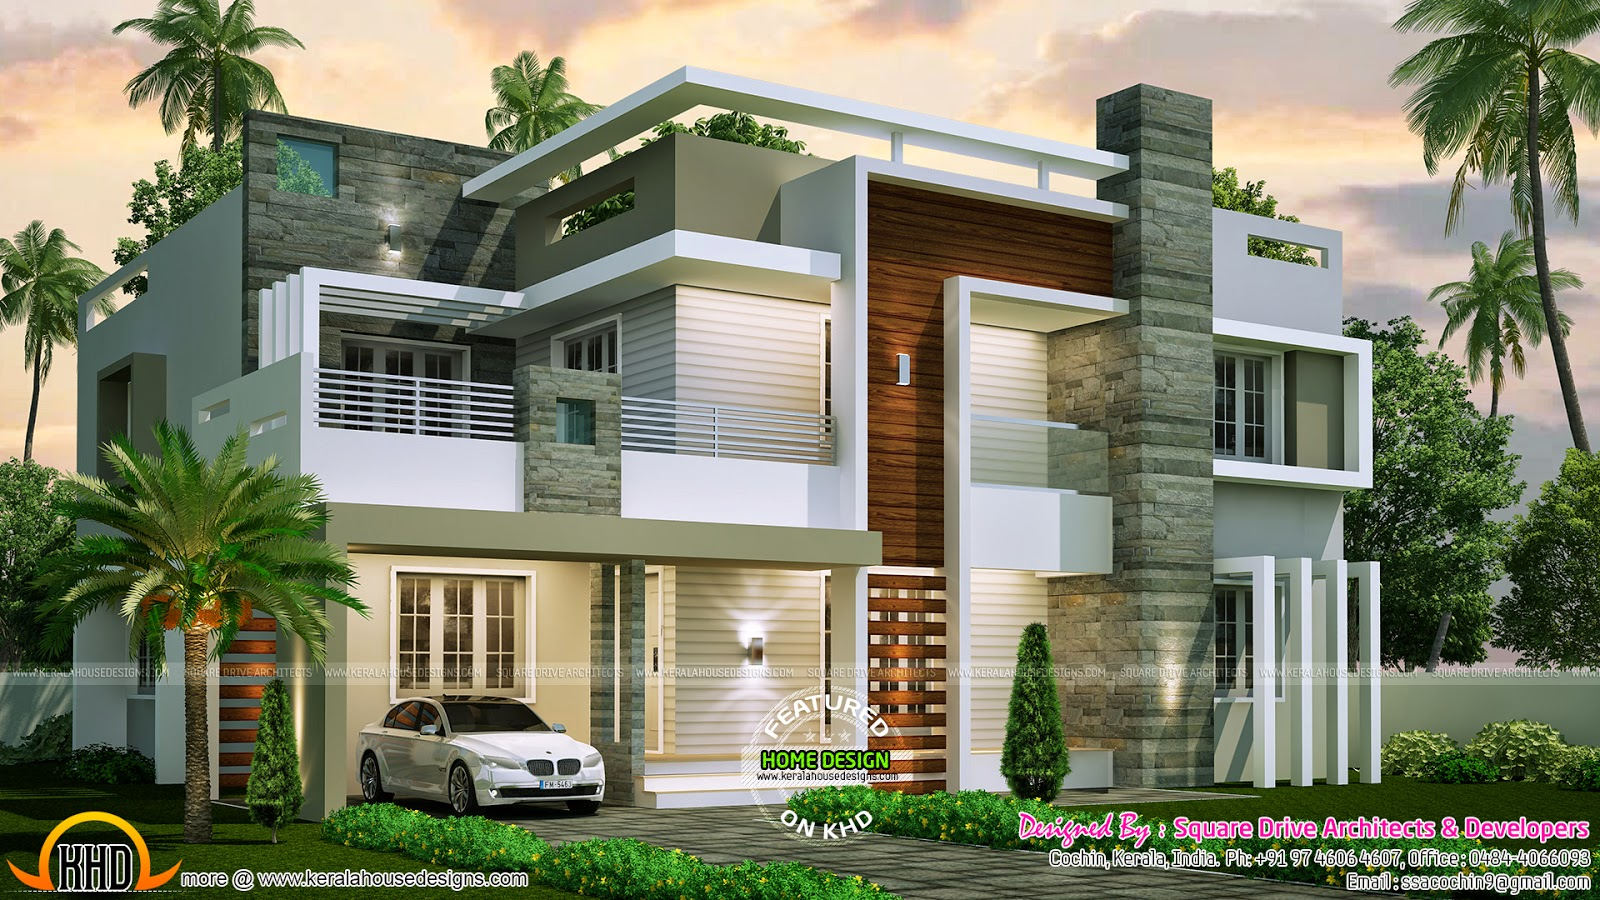 4 bedroom contemporary home design kerala home design for Modern home design